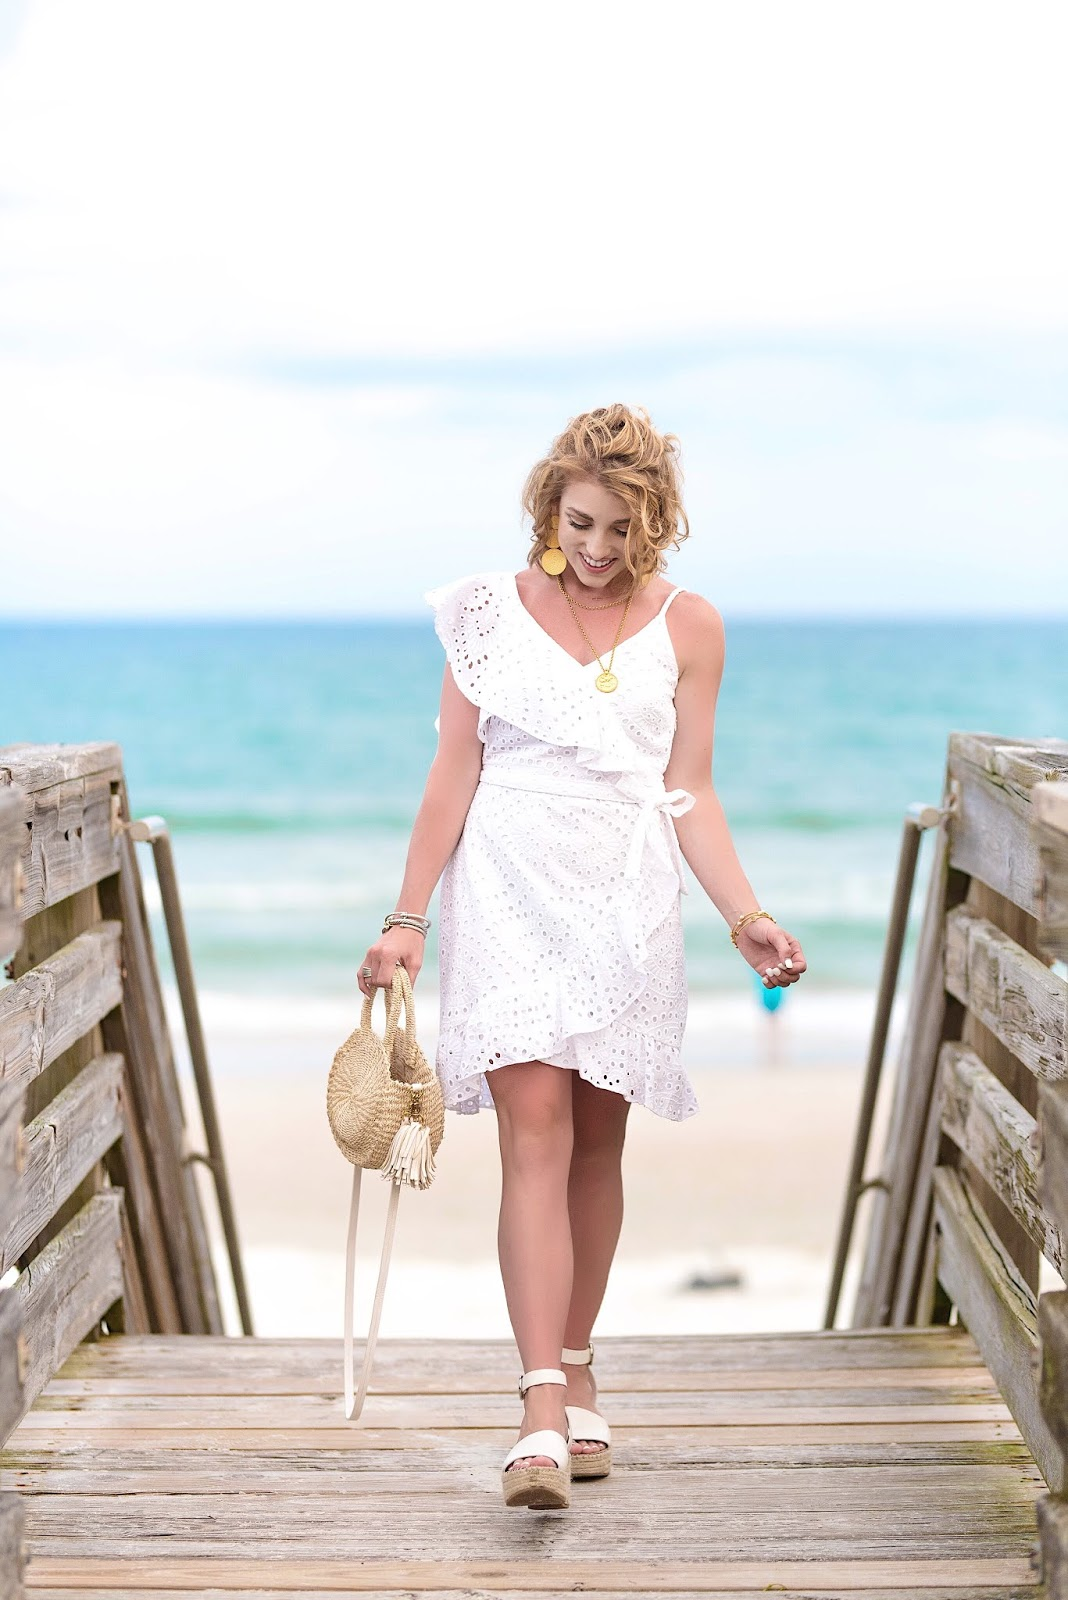 Under $100 White Eyelet Wrap Dress - Something Delightful Blog